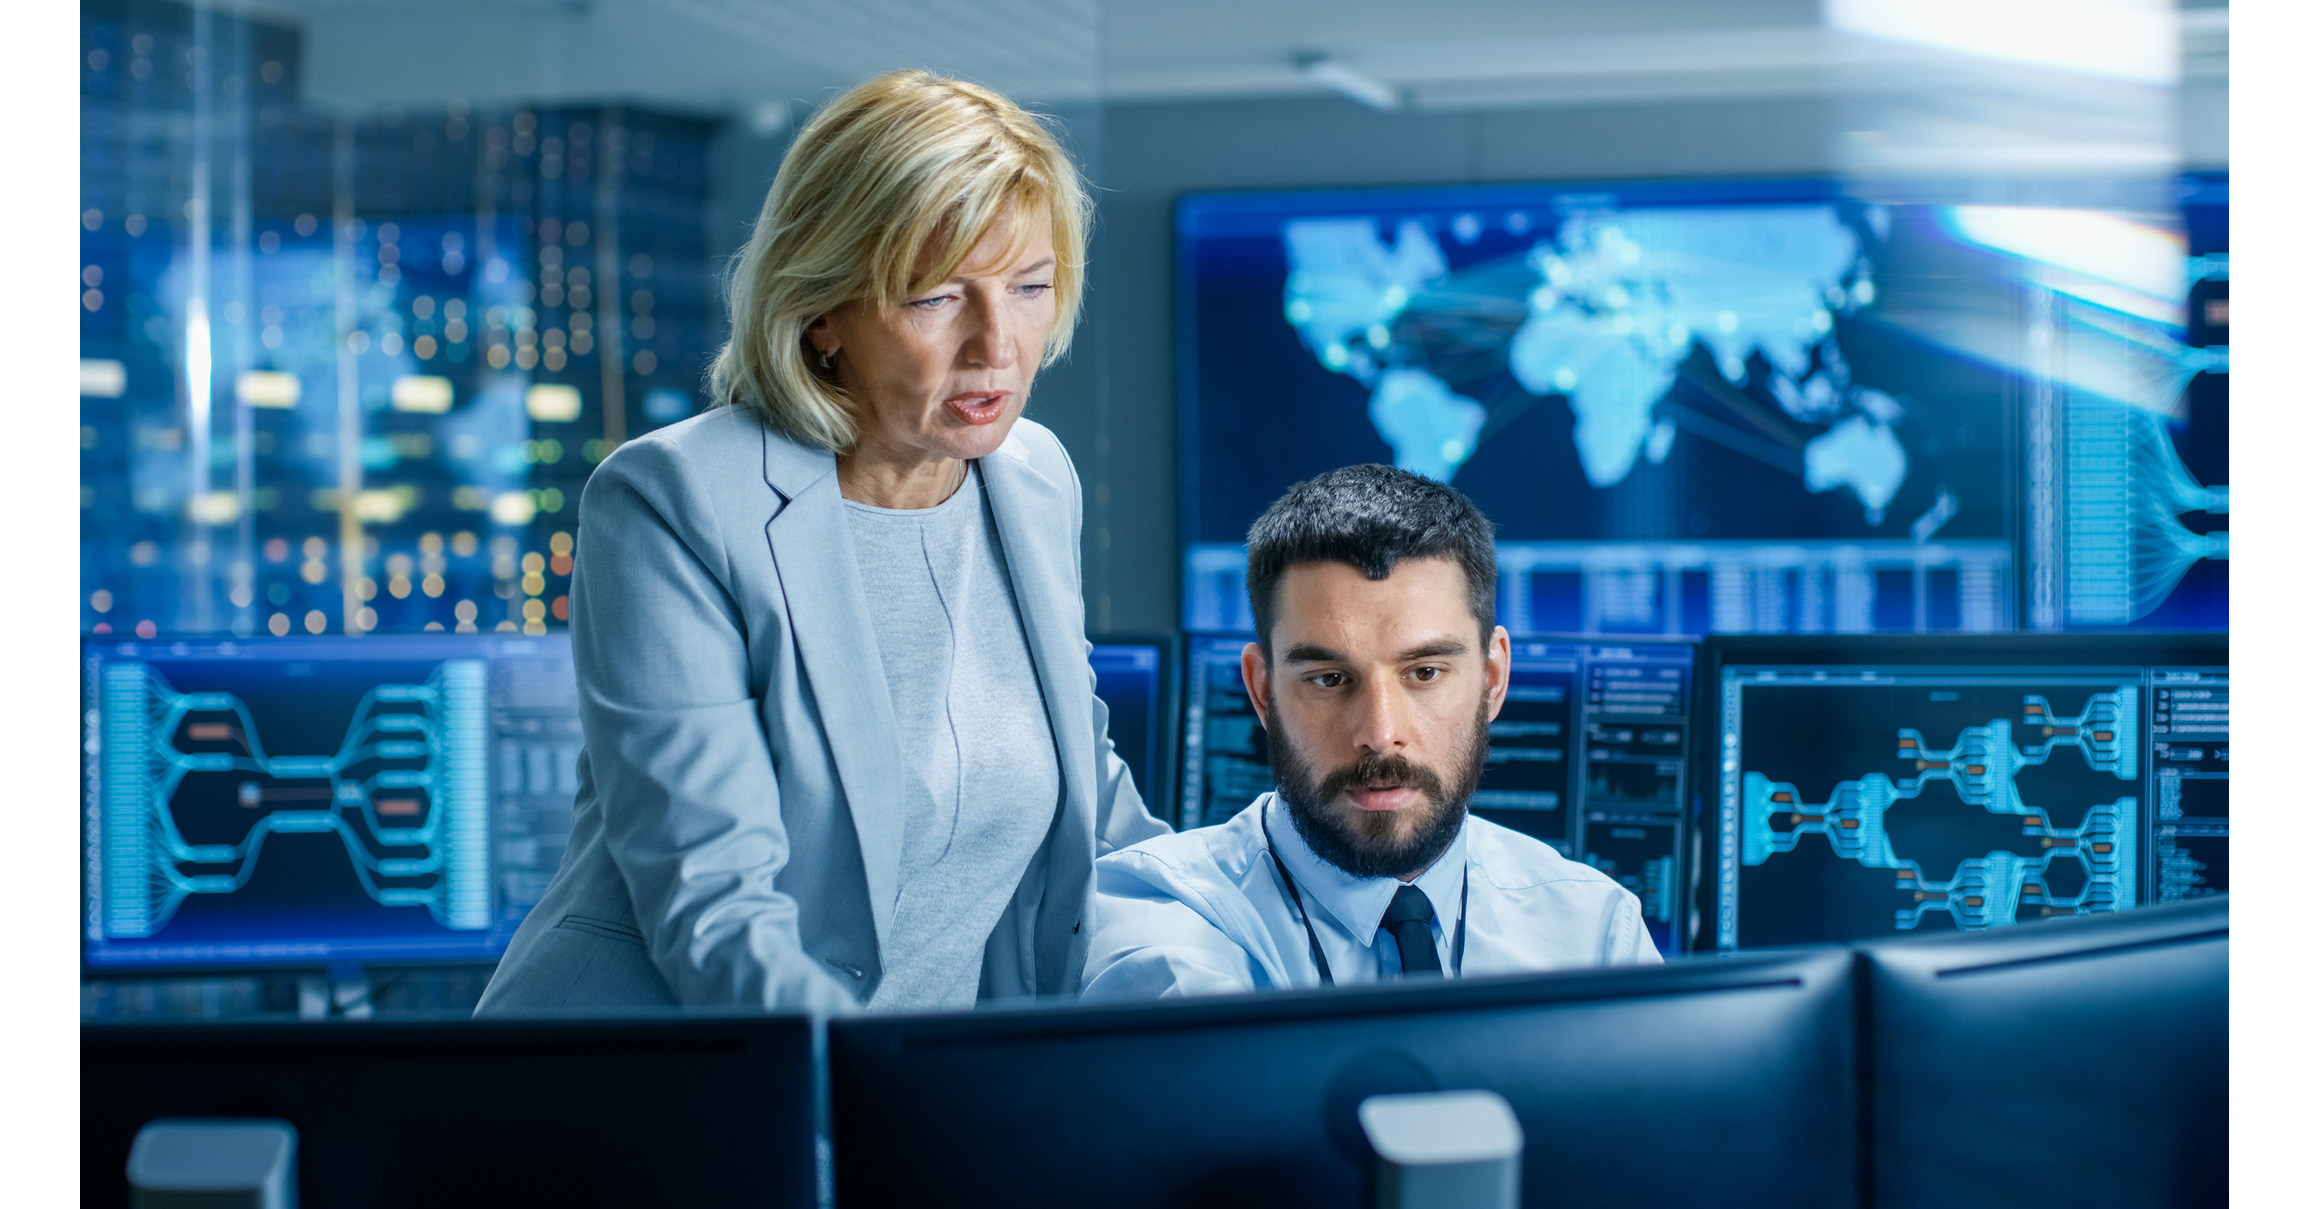 Financial services will remain the largest contributor to the European MSS/PSS market until 2024, finds Frost & Sullivan SANTA CLARA, Calif., July 29, 2021 /PRNewswire/ -- Increasing cyber-threats coupled with a shortage of cybersecurity professionals in Euro…